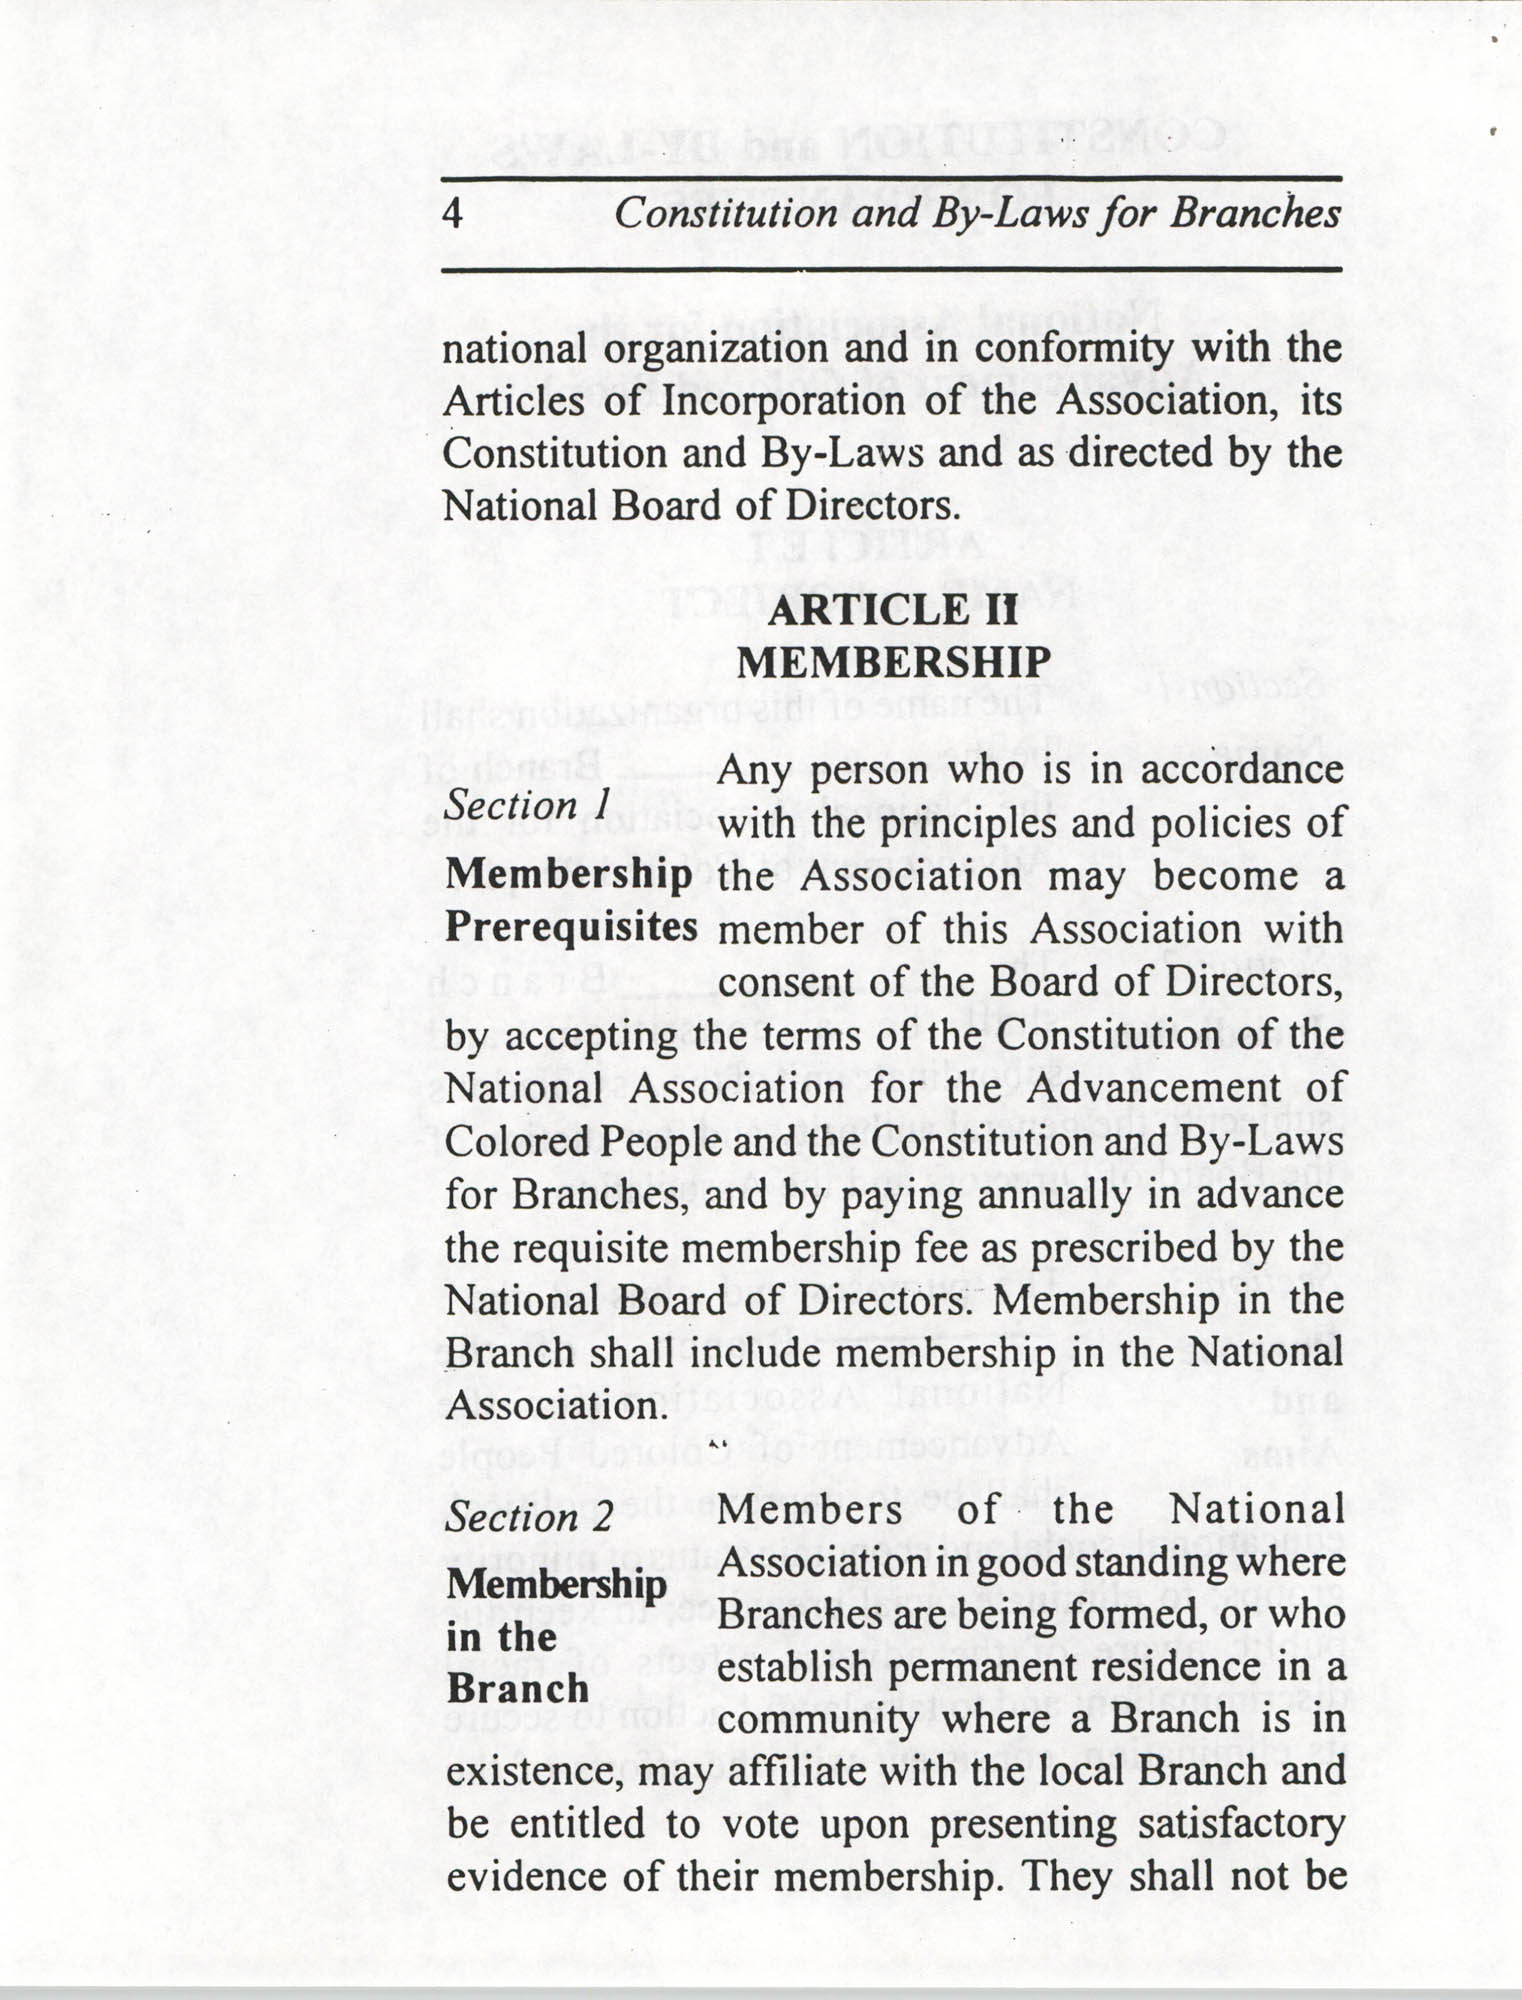 Constitution and By-Laws for Branches of the NAACP, July 1994, Page 4